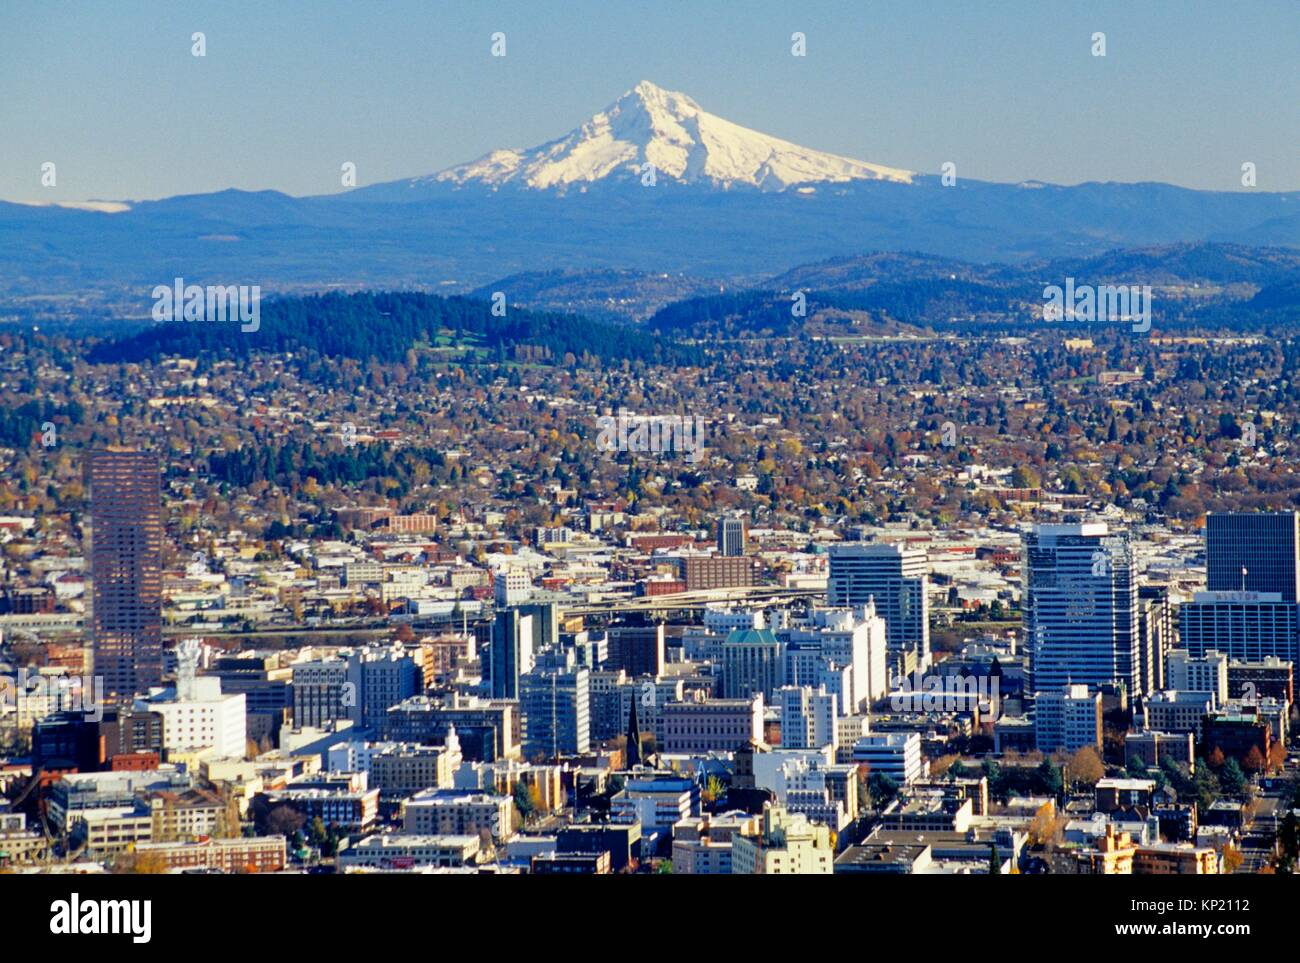 Downtown view with Mt Hood from Pittock Mansion, Portland, Oregon. - Stock Image